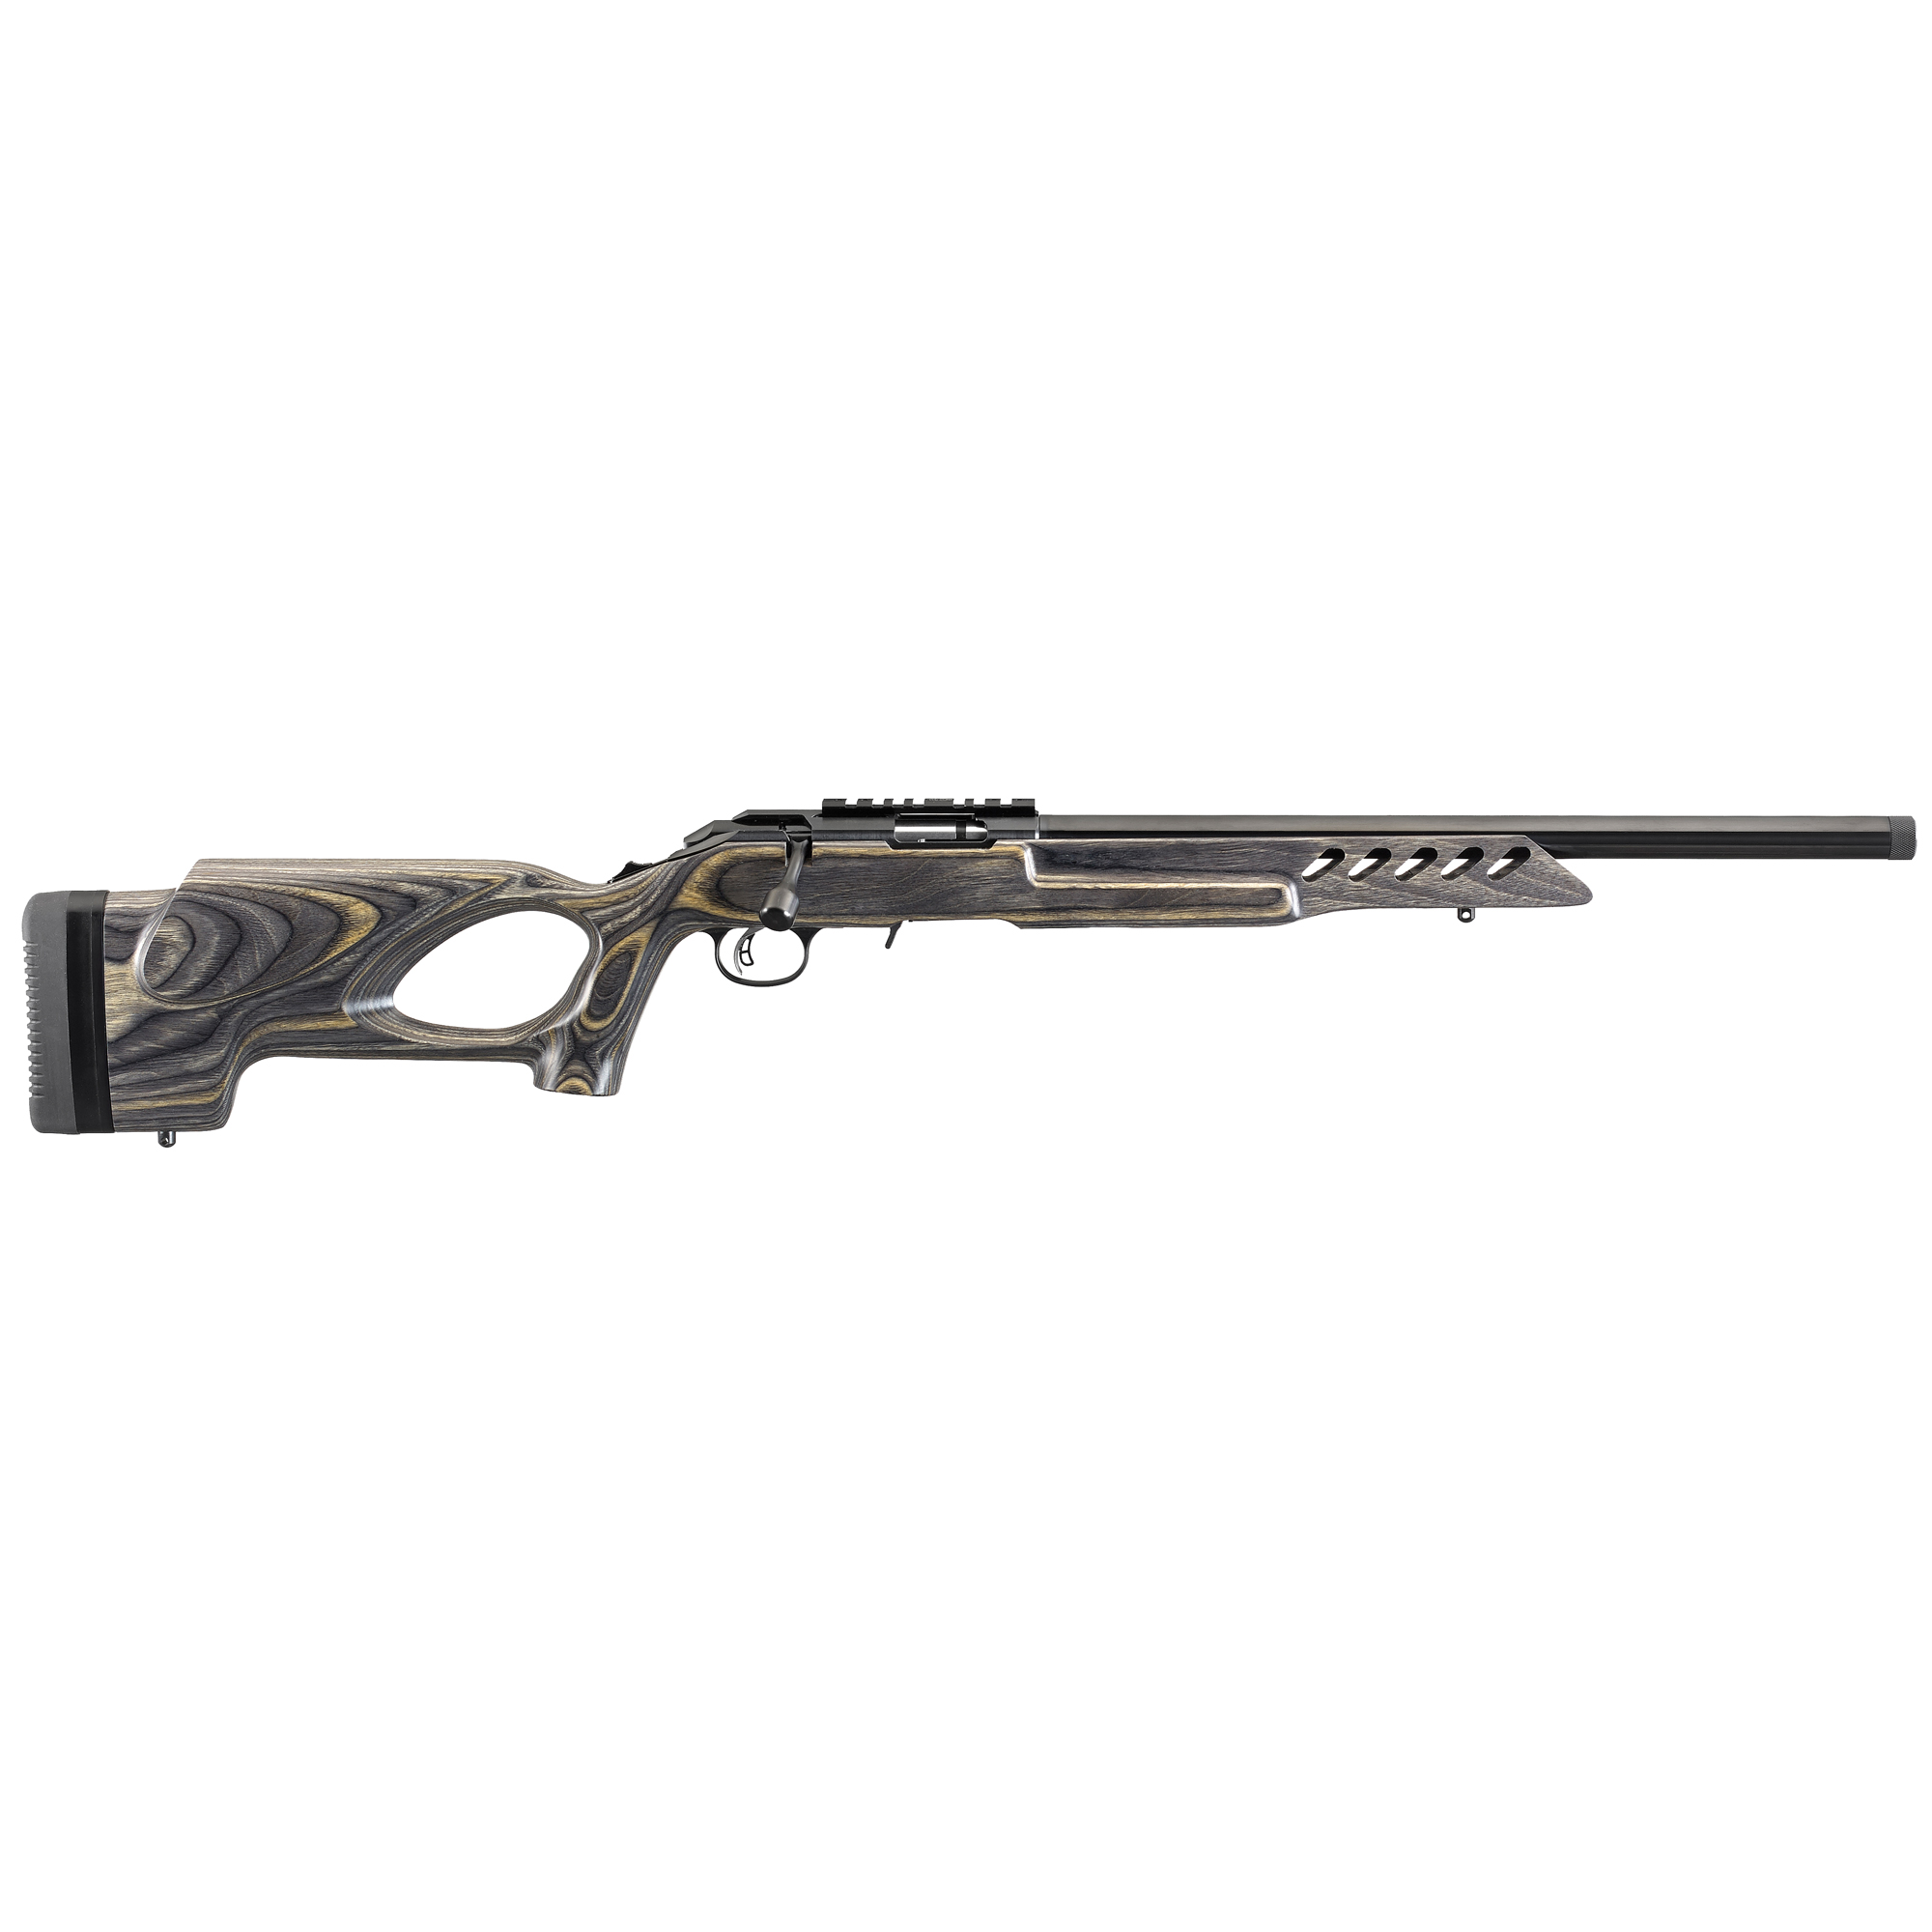 """Each Ruger American Rimfire(R) rifle includes two interchangeable stock modules that provide comb height options for scope or iron sight use (excludes wood and laminate stock models). Standard models come with long length of pull modules"""" while compact models come with short length of pull modules."""